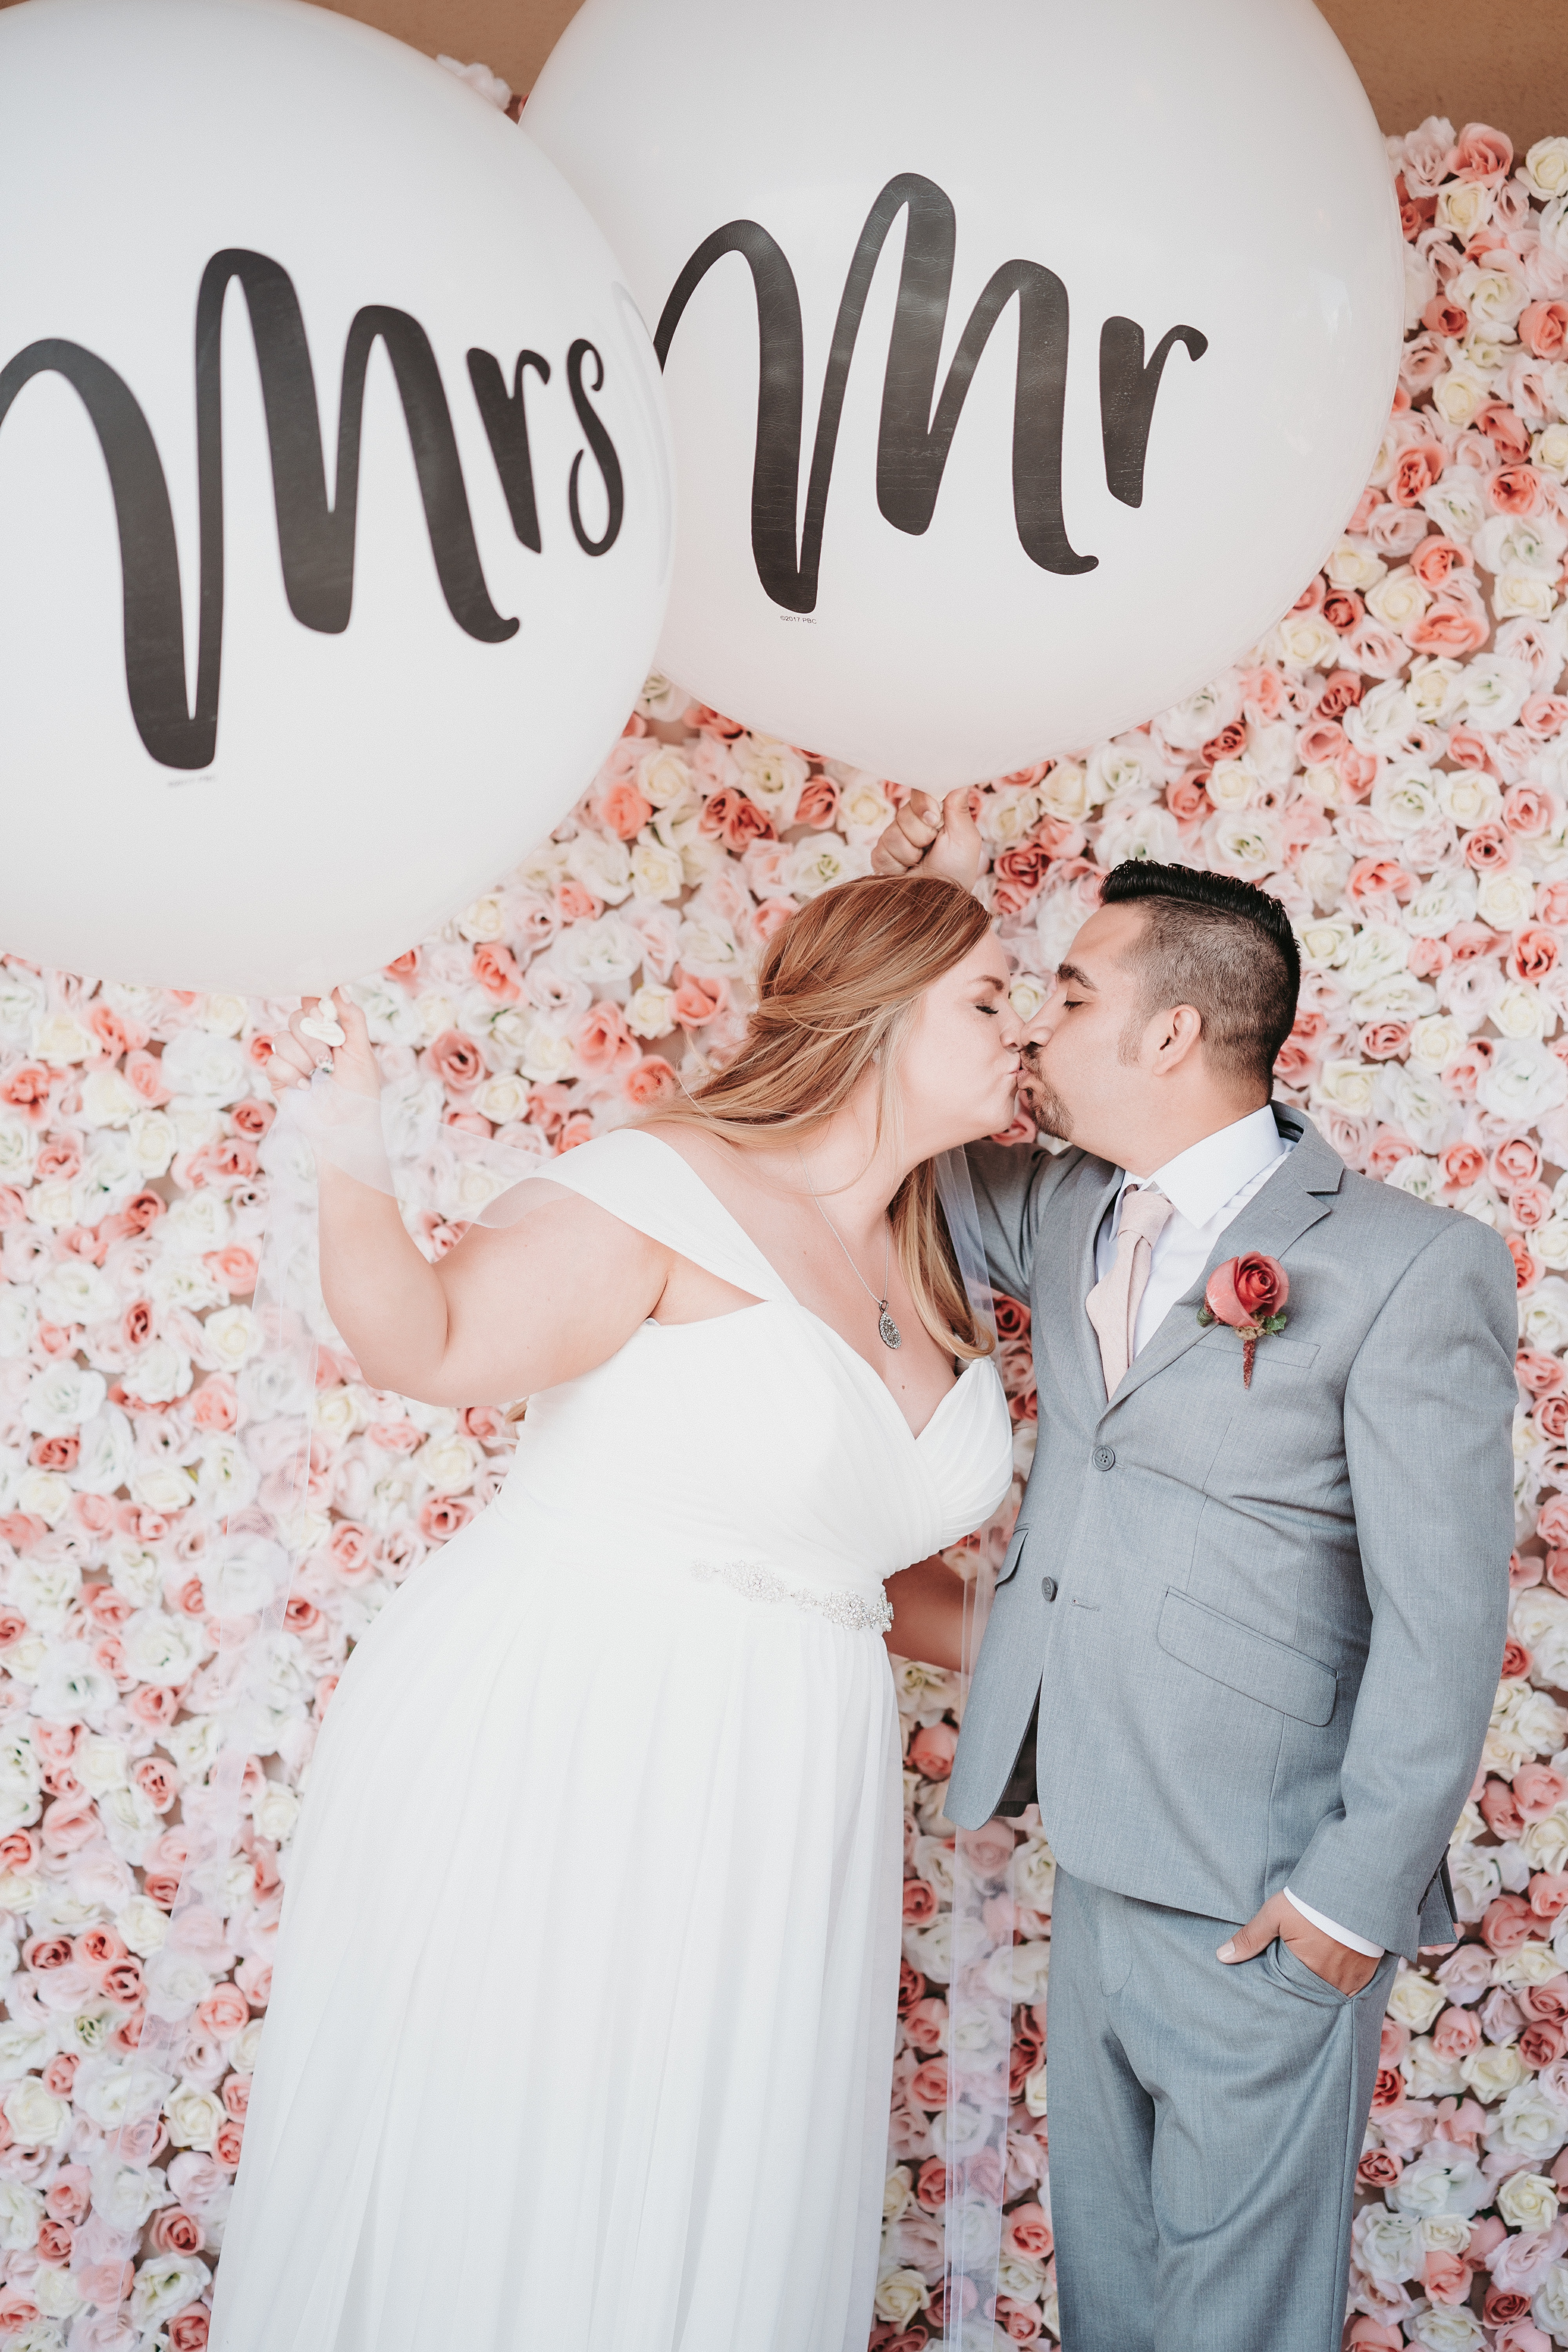 balloons, mr and mrs balloons, floral backdrop, bride and groom kiss, new mexico wedding decor, casi sueno, pink and white flowers